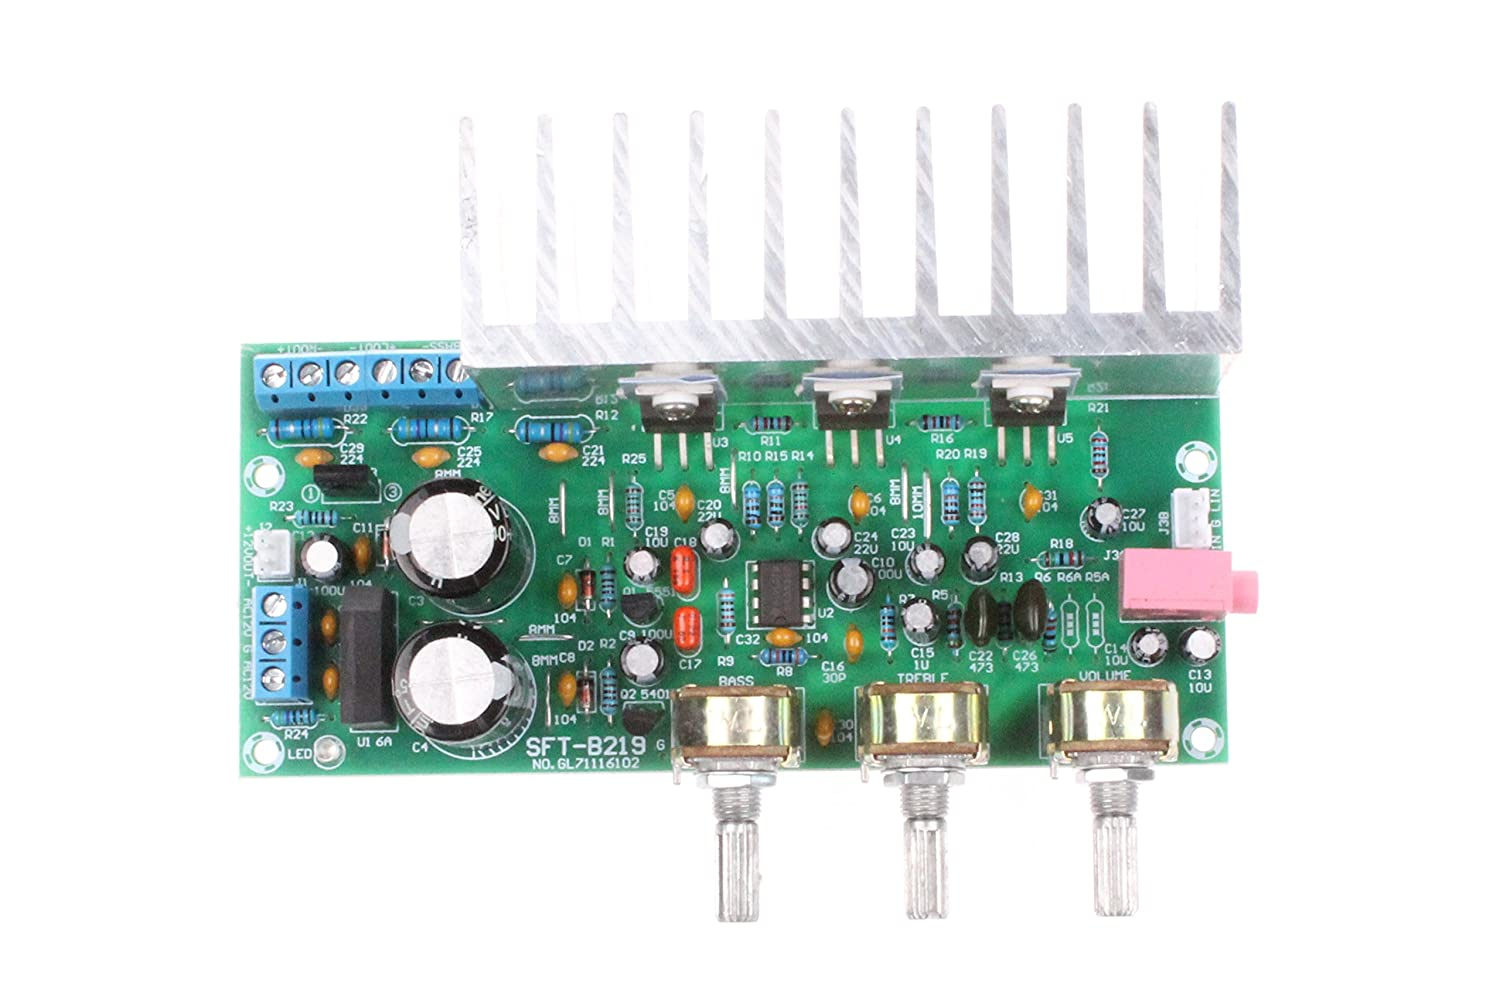 Noyito Tda2050 Tda2030 Ne5532 21 3 Channel Hi Fi And Cheap Audio Systems 32w Amplifier Circuit Diagram Subwoofer Board 18w Compatible With Lm1875 Musical Instruments